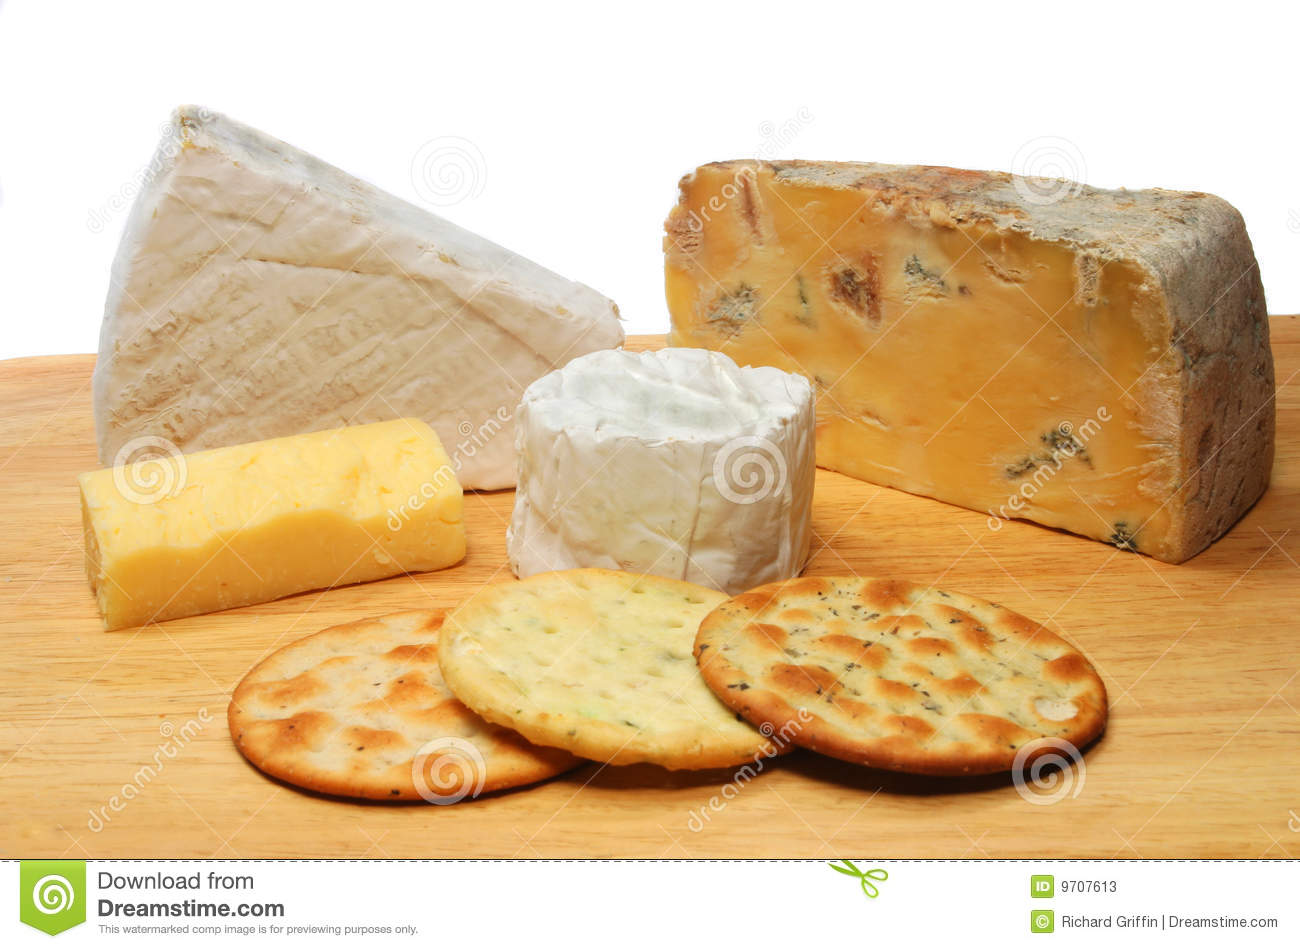 cheese-biscuits-9707613.jpg